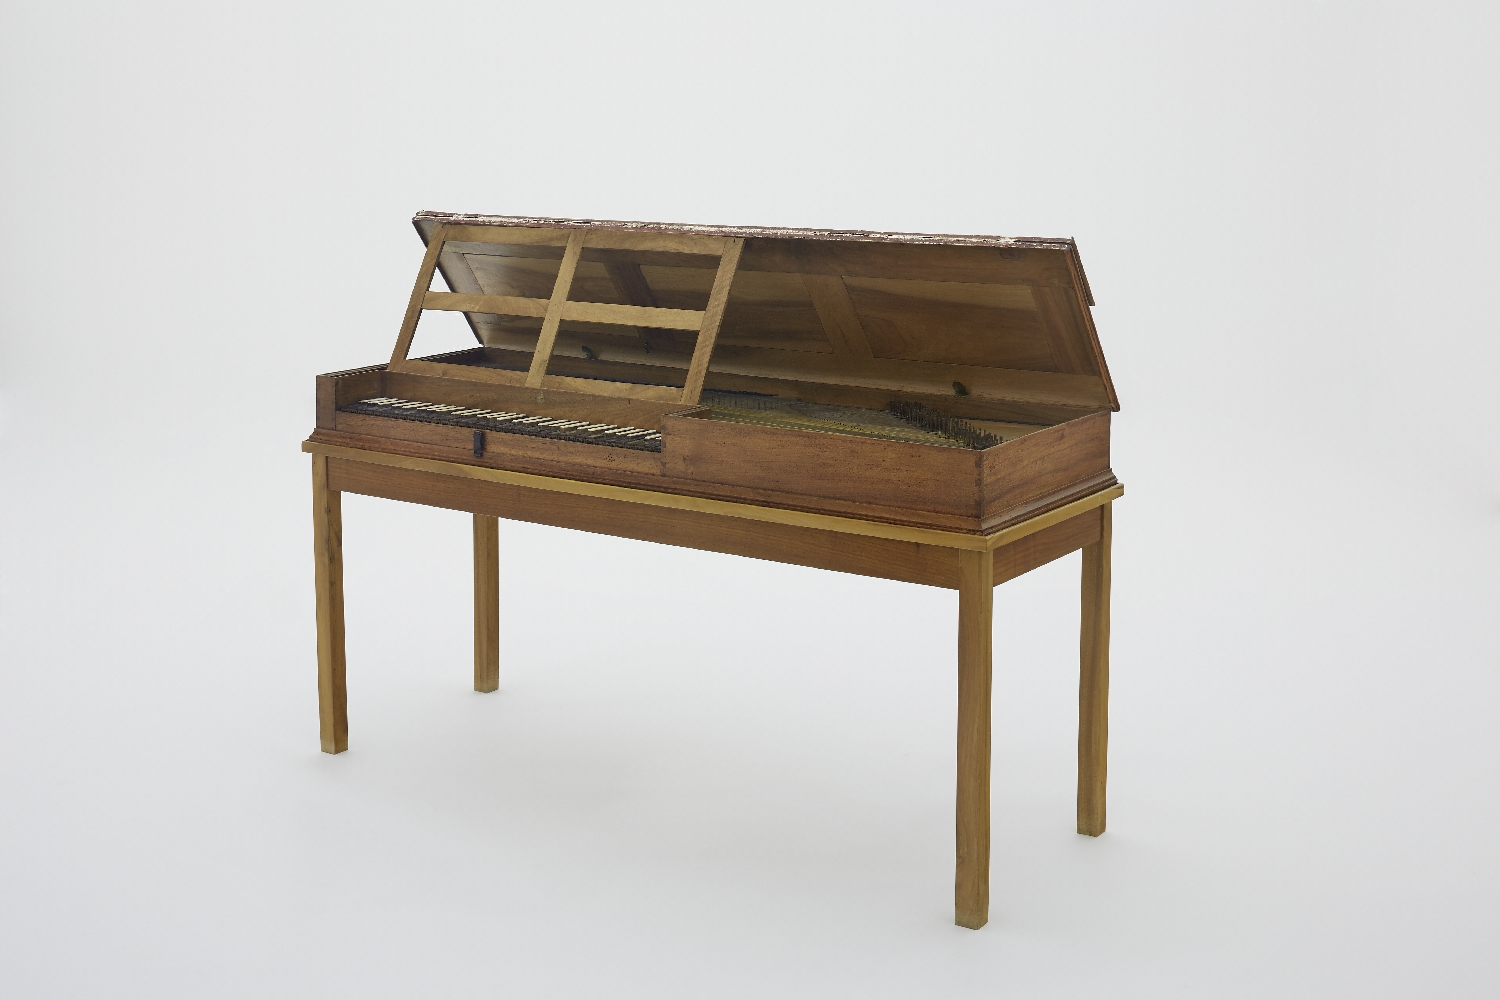 Clavichord owned by Baroness Maria Anna von Berchtold zu Sonnenburg, née Mozart, unknown instrument maker, Germany, late 18th c., wood, ivory, metal, inv. no. MI 1264